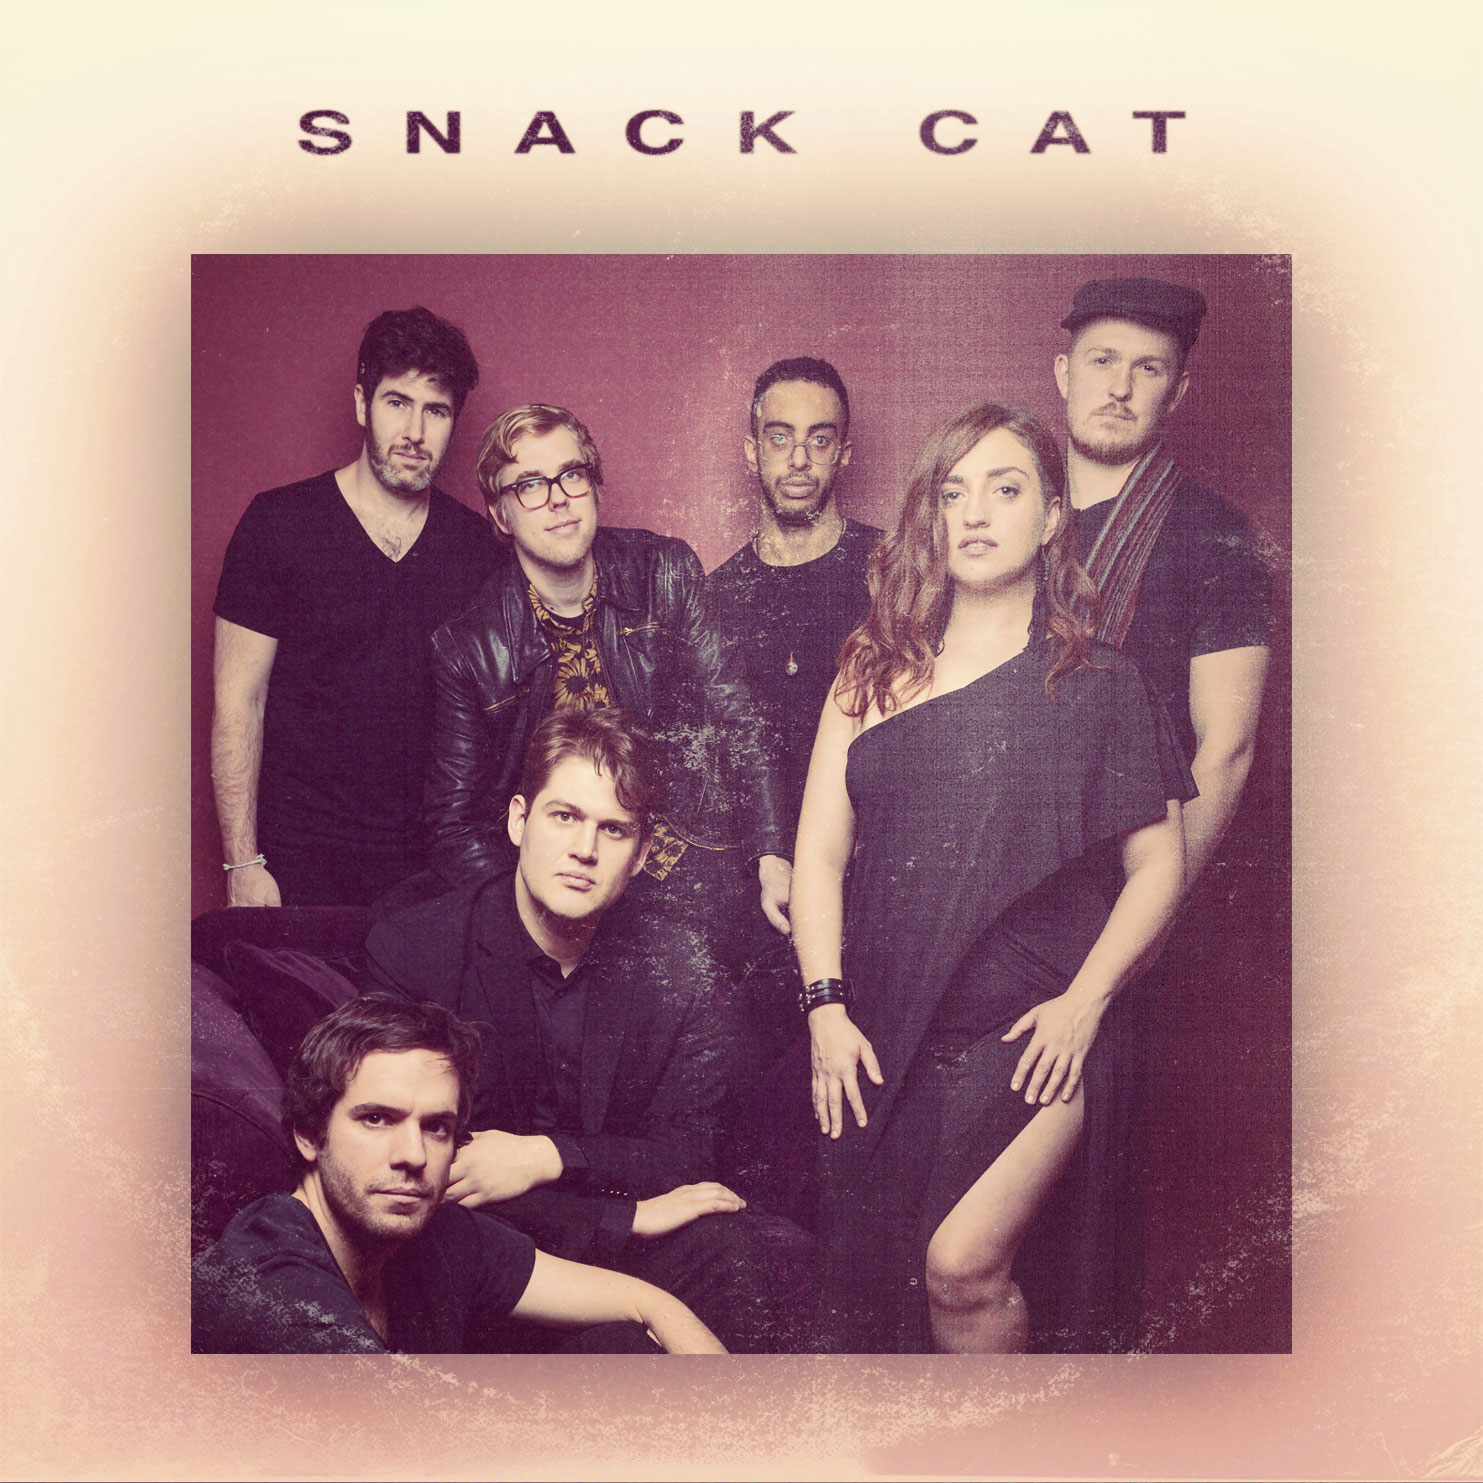 snack_cat_cover_square (1).jpg